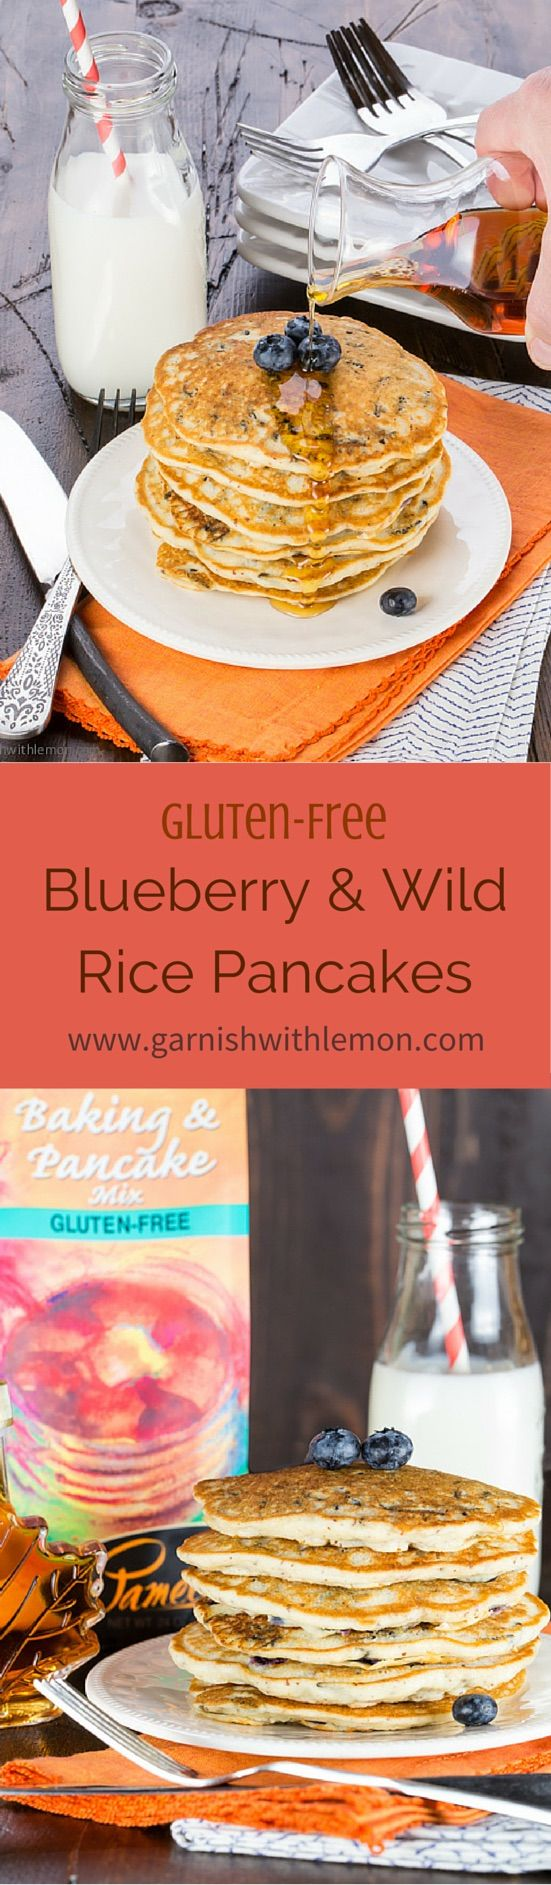 Ever been to Minnesota? Now you can eat like a local wherever you live with these Minnesota Blueberry and Wild Rice Pancakes! ~ http://www.garnishwithlemon.com